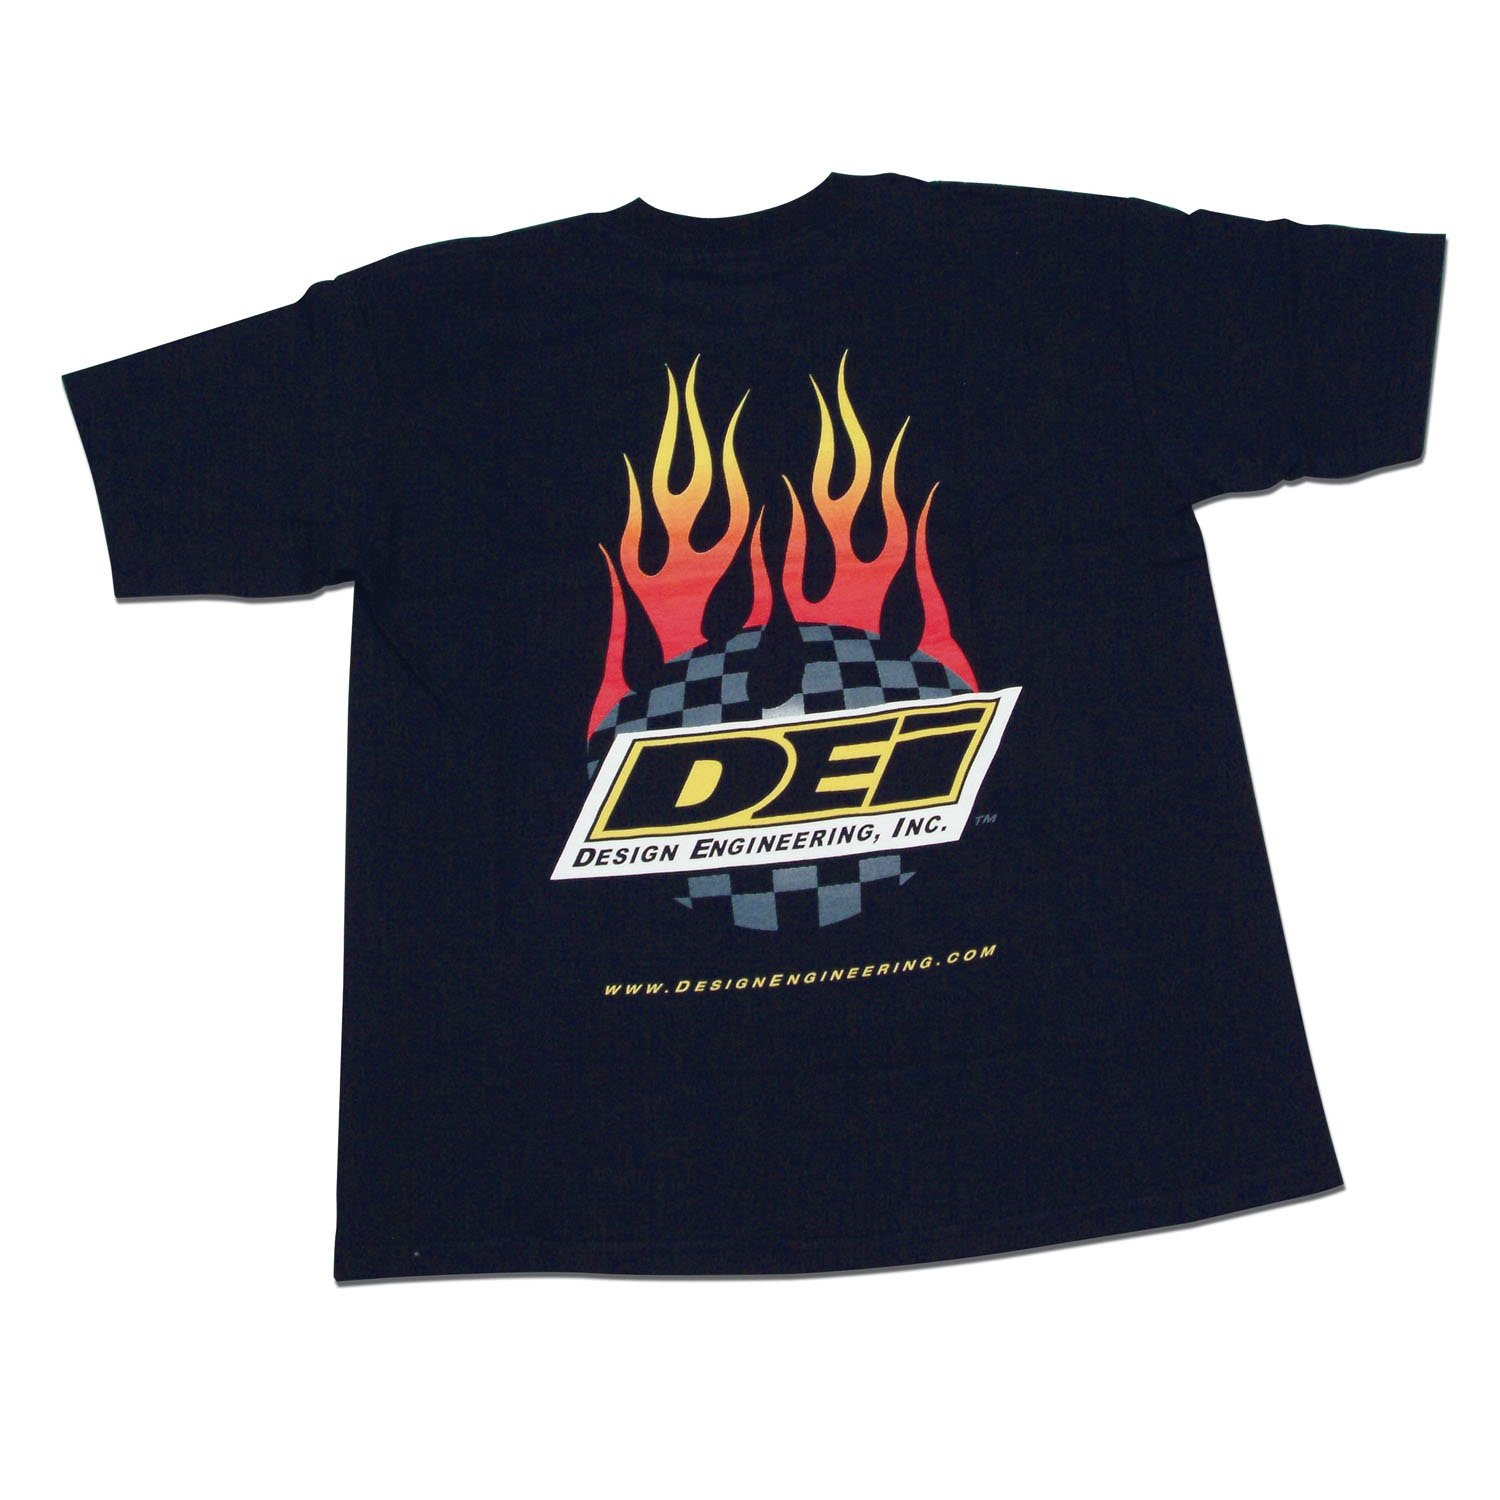 Small Design Engineering 070100 Flamed Logo Cotton T-Shirt